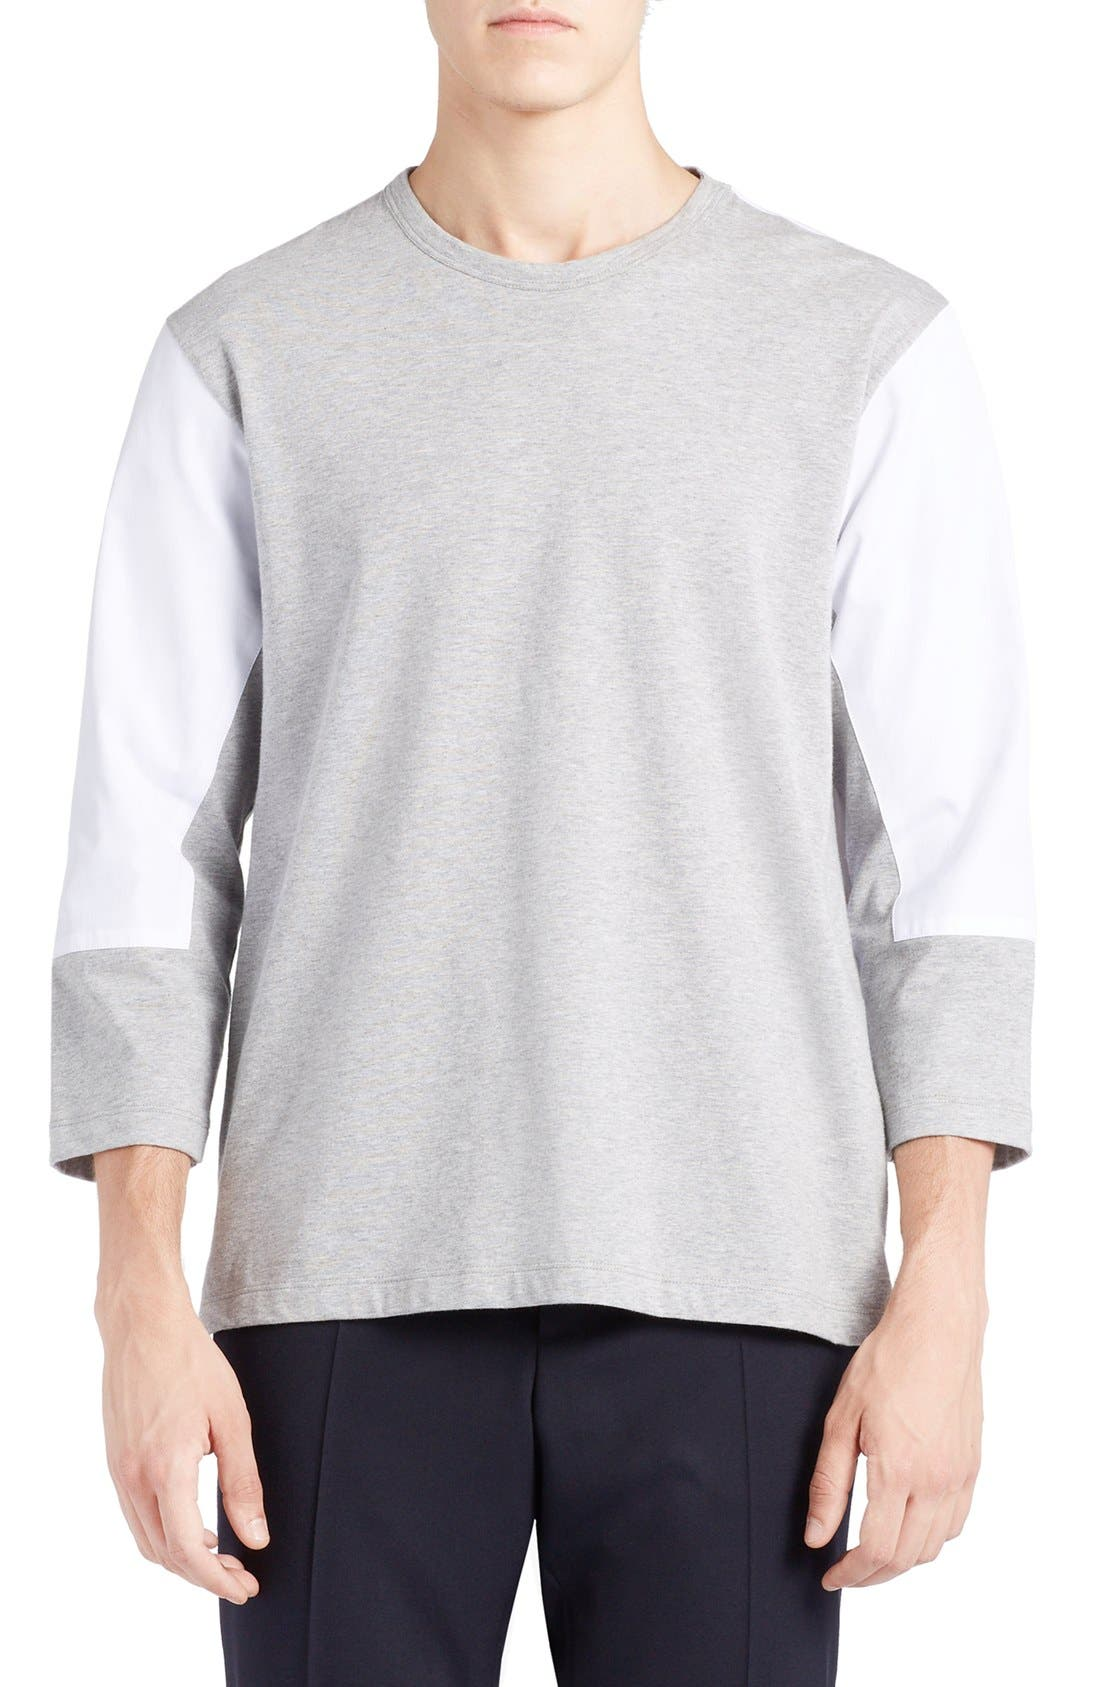 MARNI Mixed Media Colorblock T-Shirt